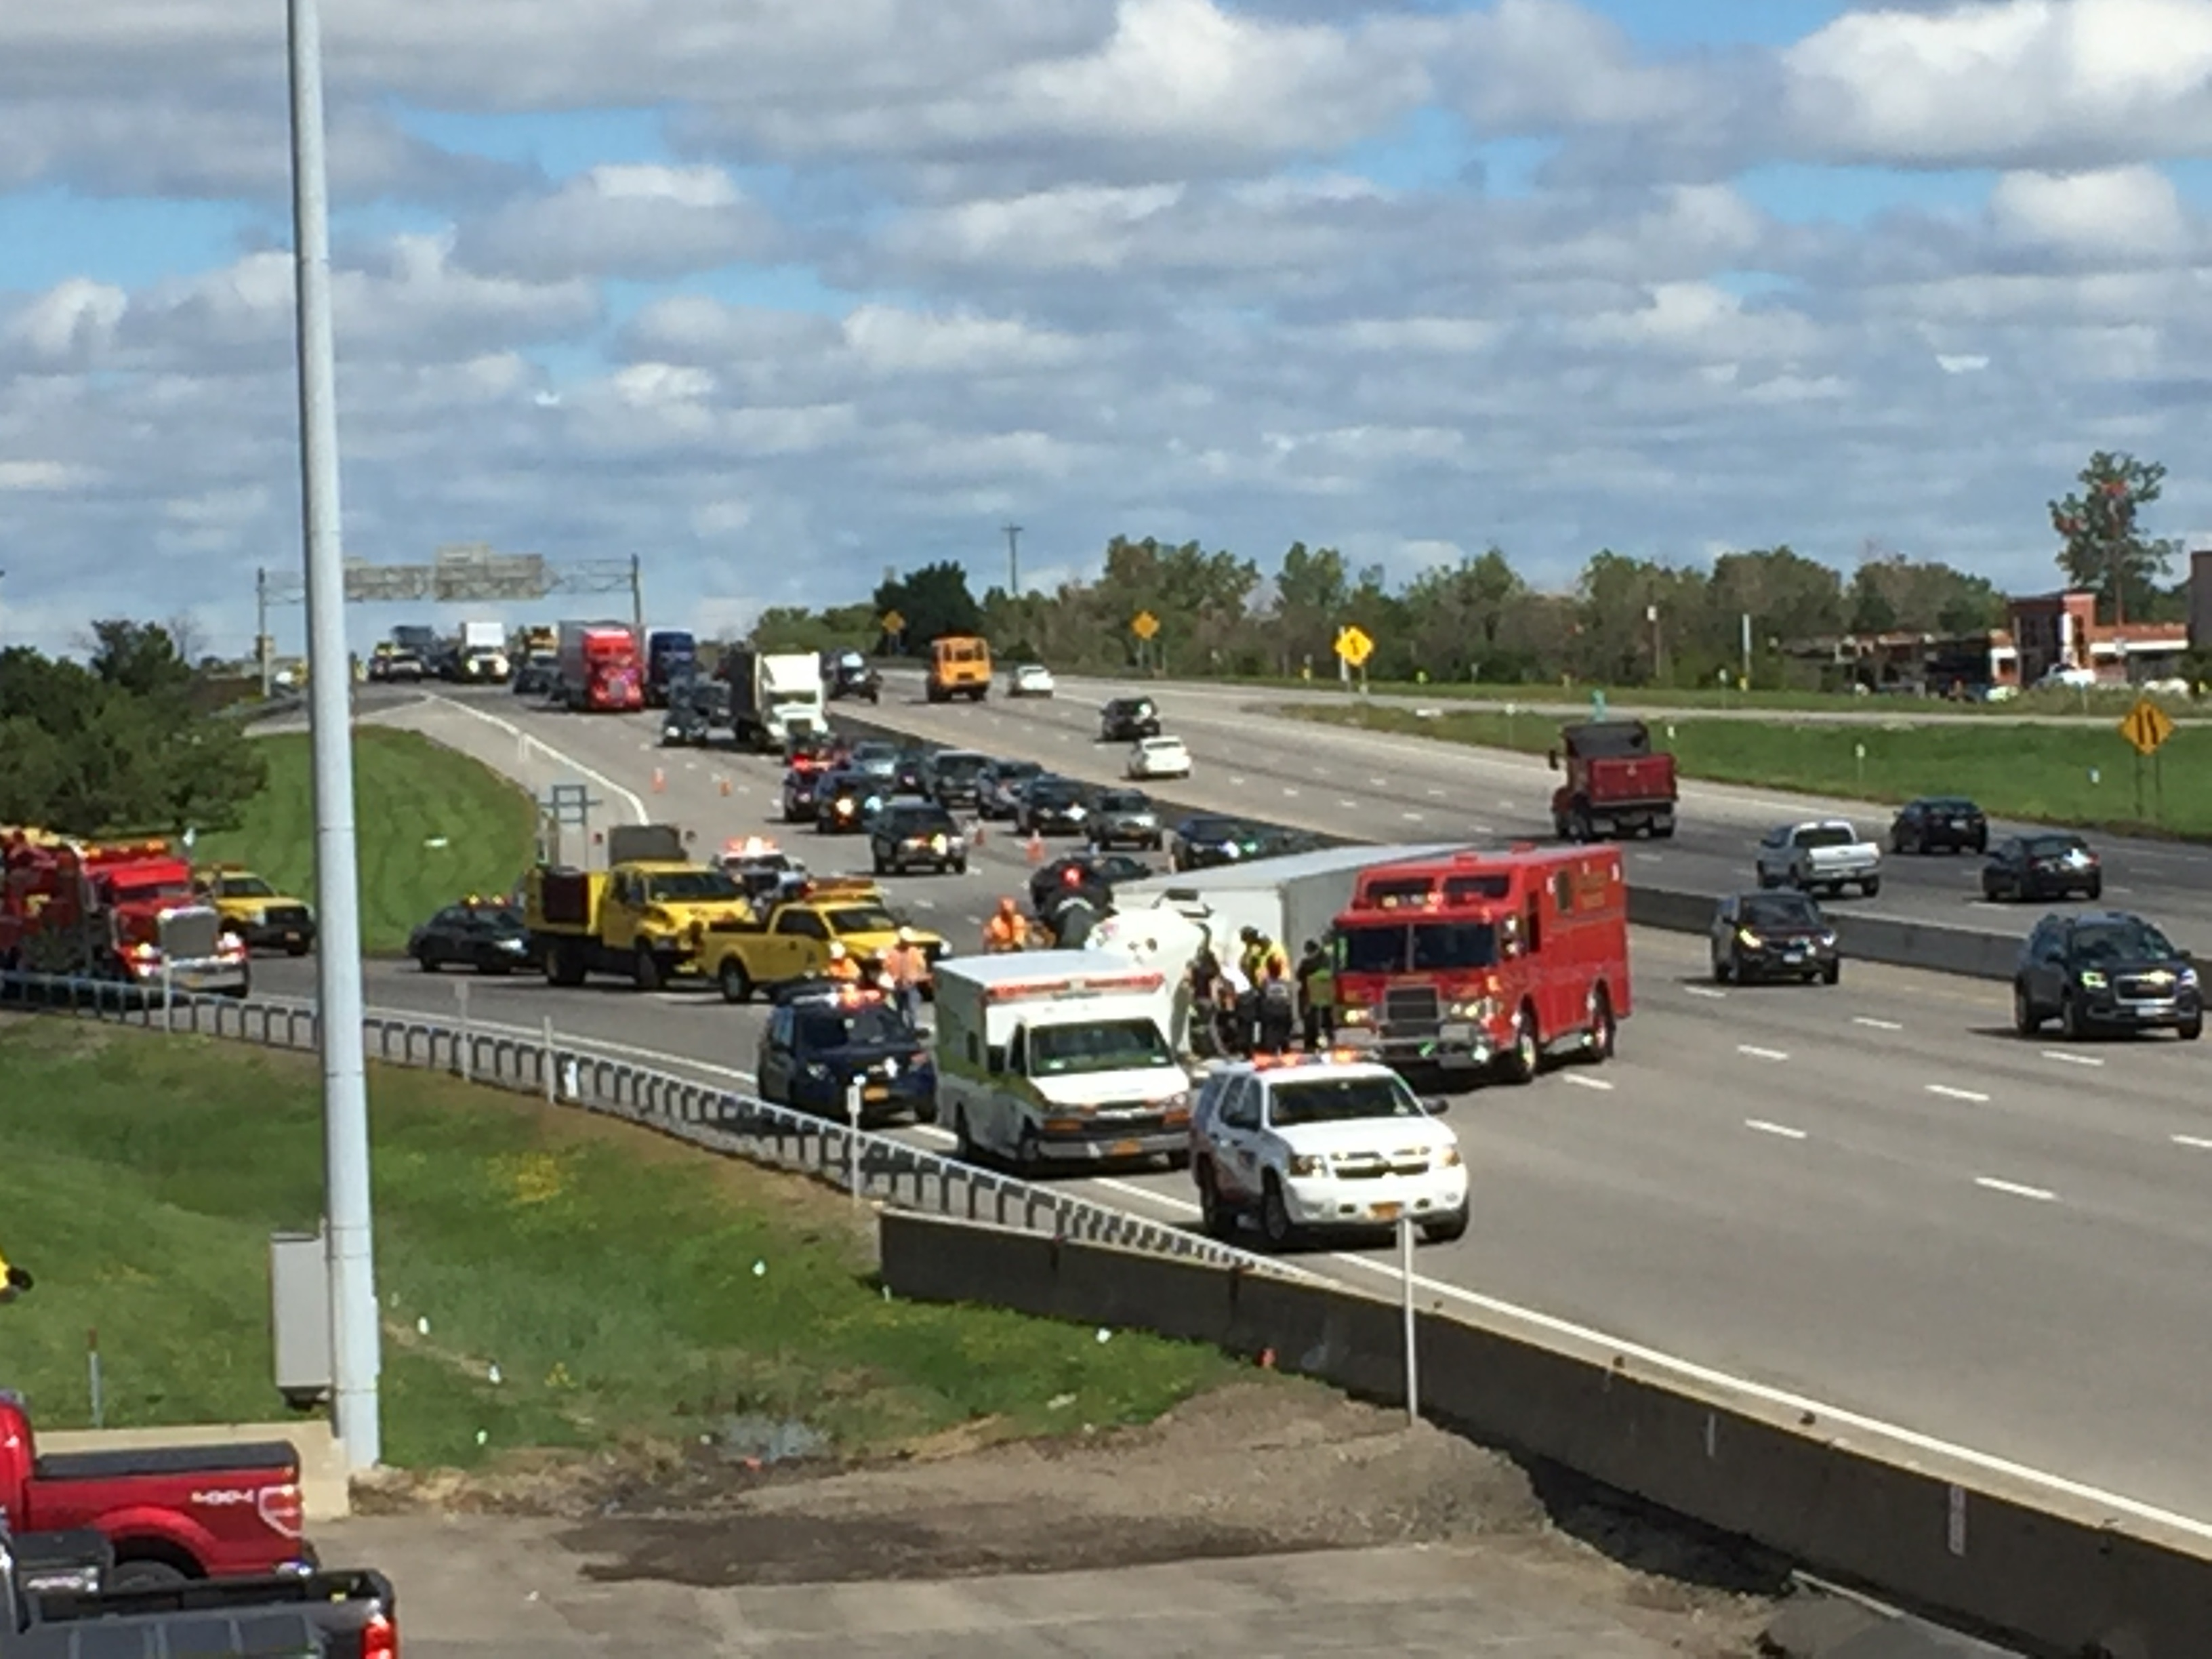 A tractor-trailer overturned on the mainline Thruway in Cheektowaga on Thursday morning. (State Police)